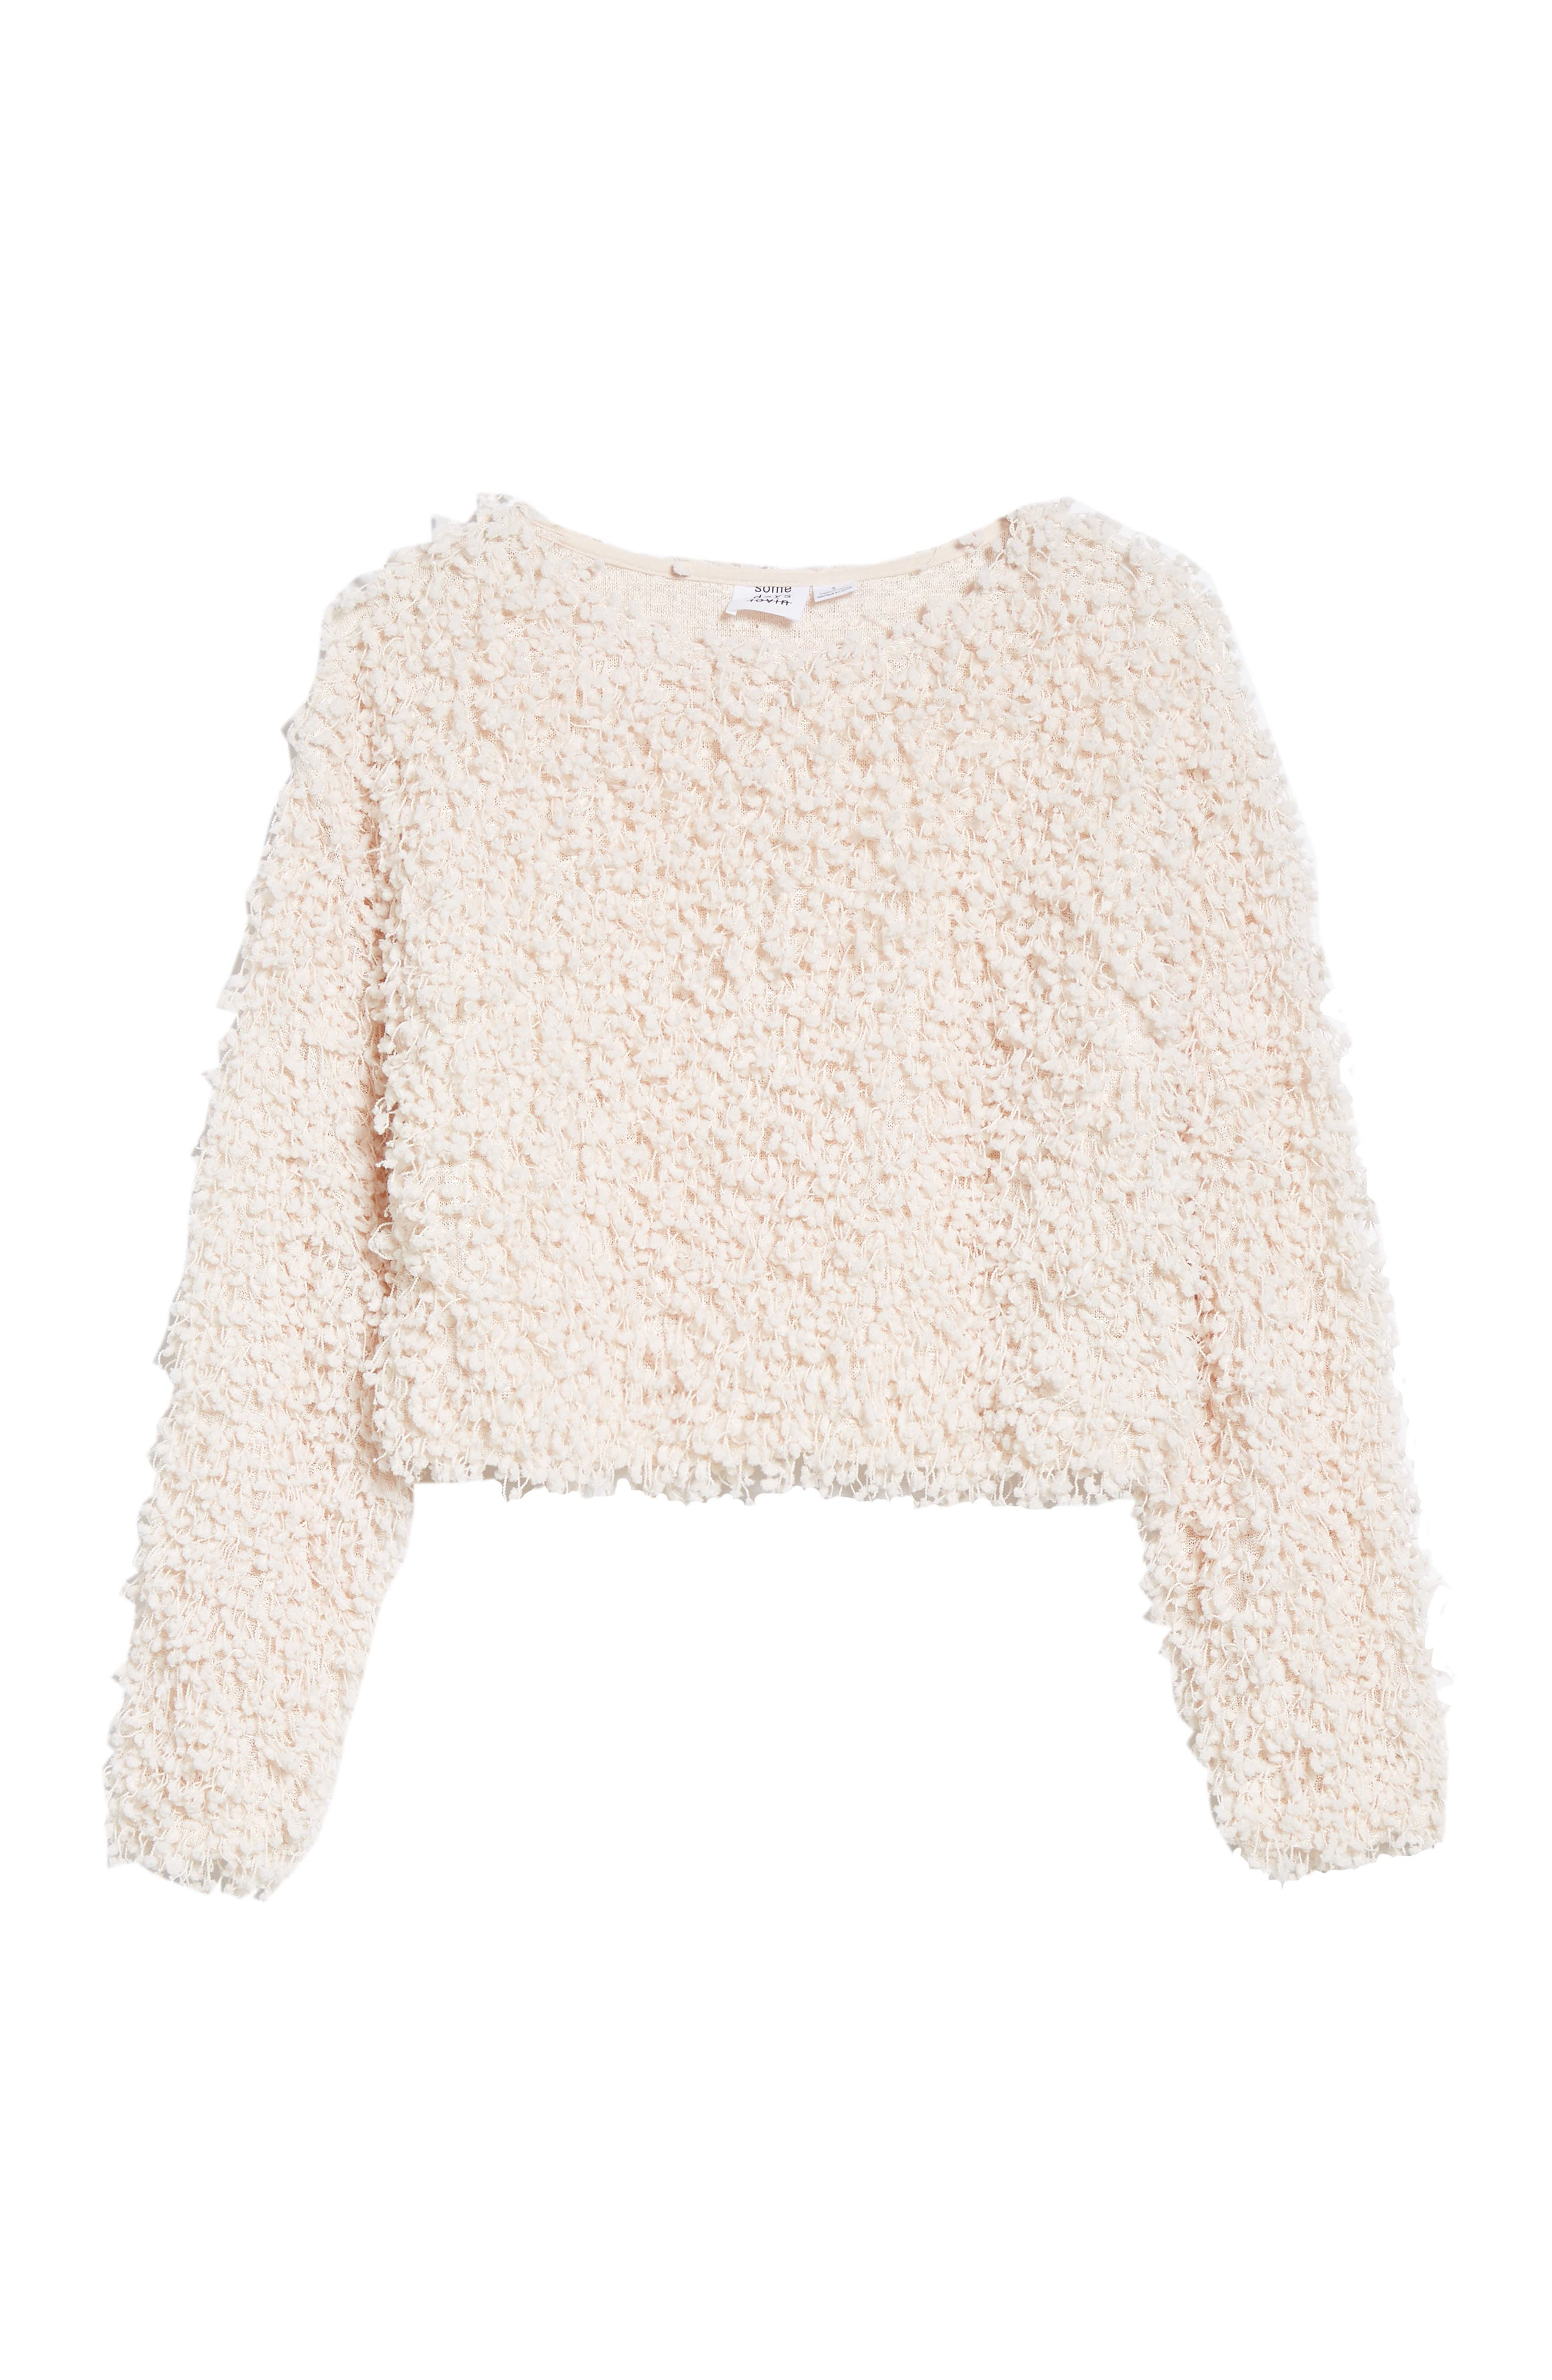 Glorious Crop Sweater,                             Alternate thumbnail 6, color,                             CREAM